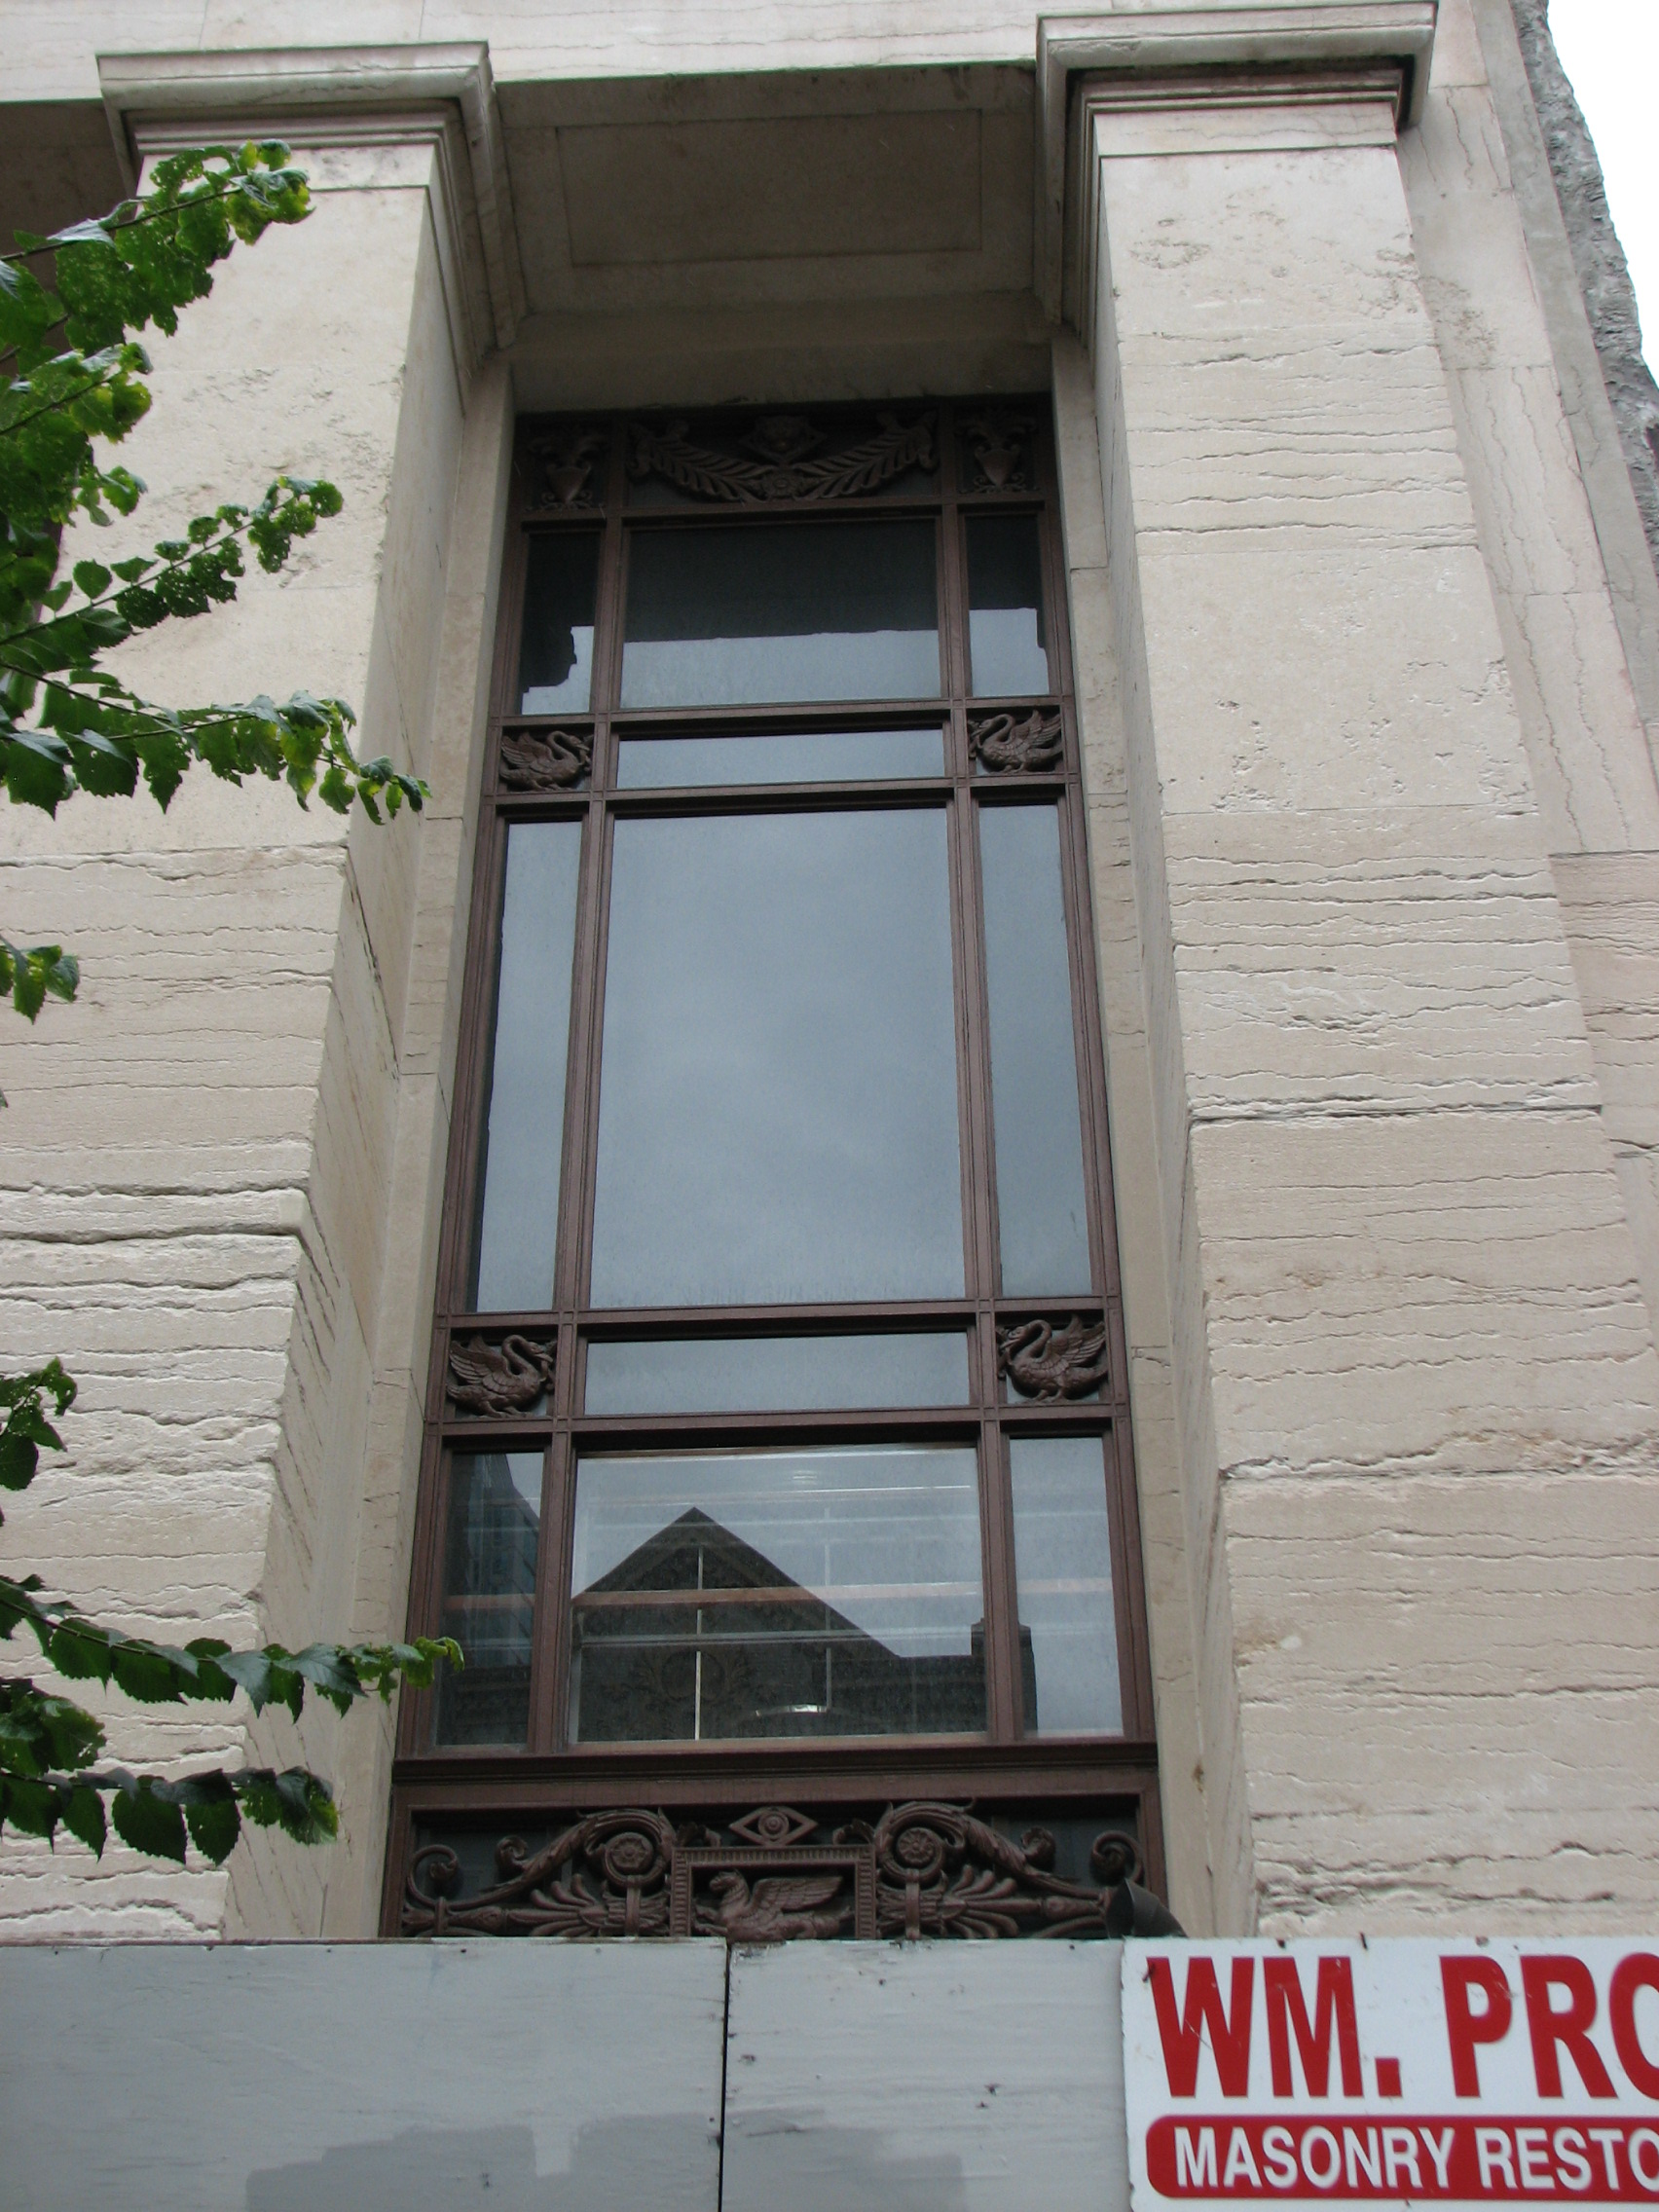 The building's vertical columns are broken by deep-set windows with decorative frames.